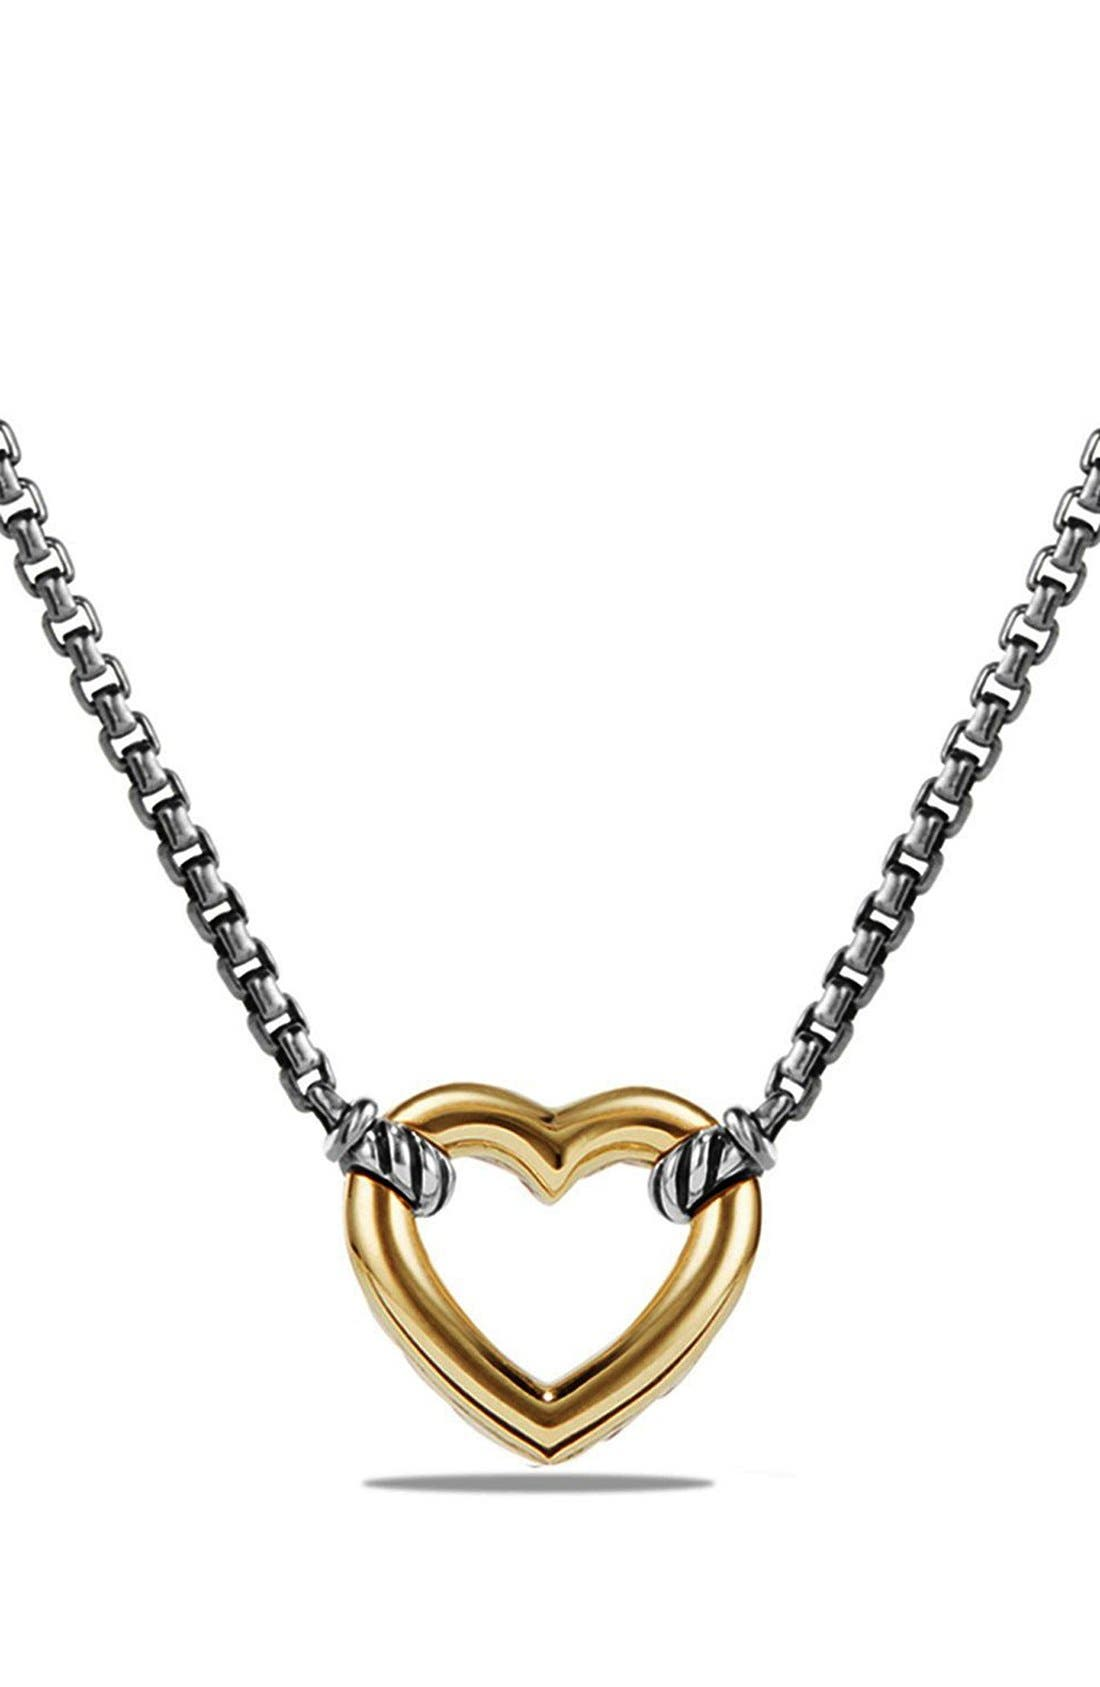 'Cable Collectibles' Heart Station Necklace with 18K Gold,                             Main thumbnail 1, color,                             040